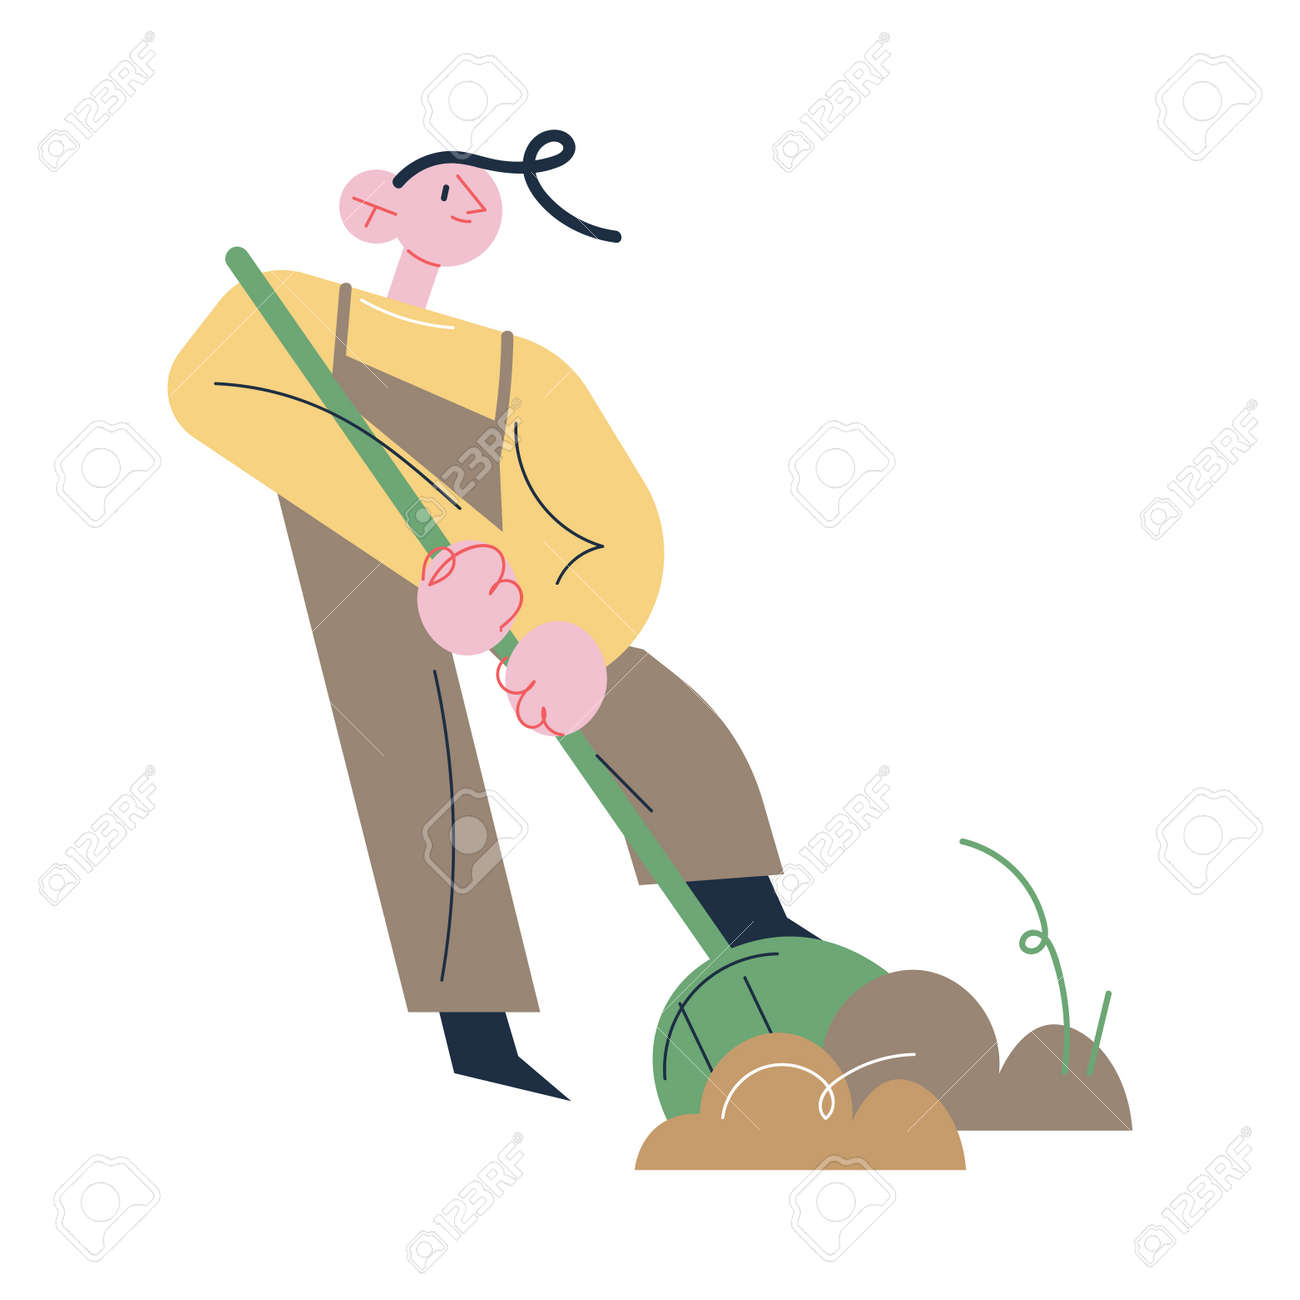 Man gardener in working clothes digging ground with showel - 164873977